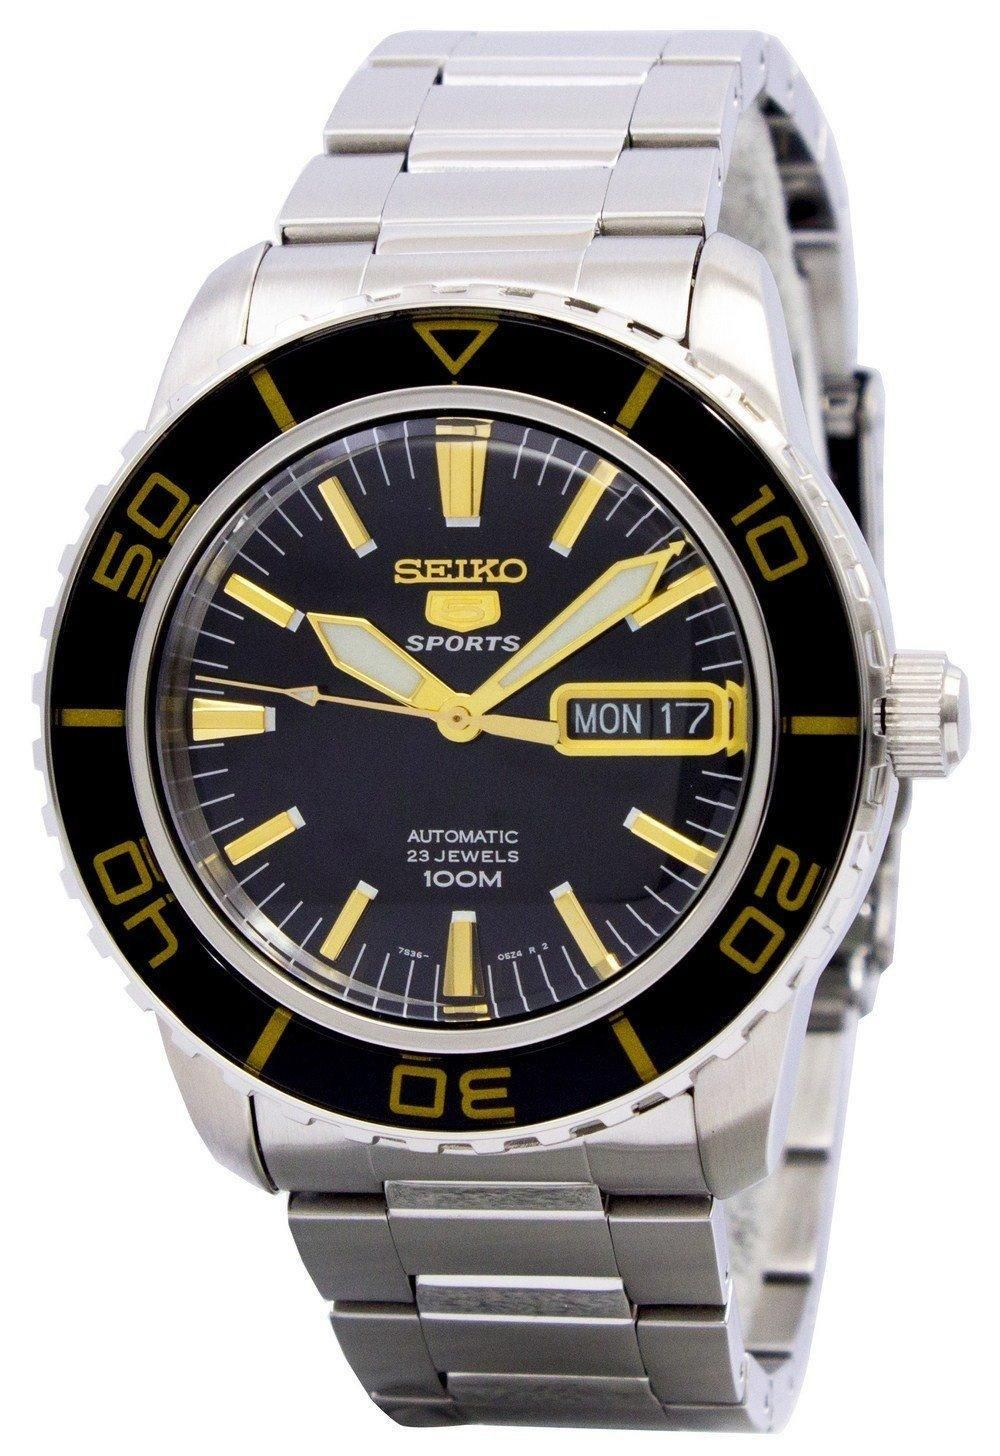 8d423e3b6 Seiko Automatic Sports Snzh57 Snzh57k1 Snzh57k Men's Watch (FREE Shipping)  Sale! Up to 75% OFF! Shop at Stylizio for women's and men's designer  handbags, ...